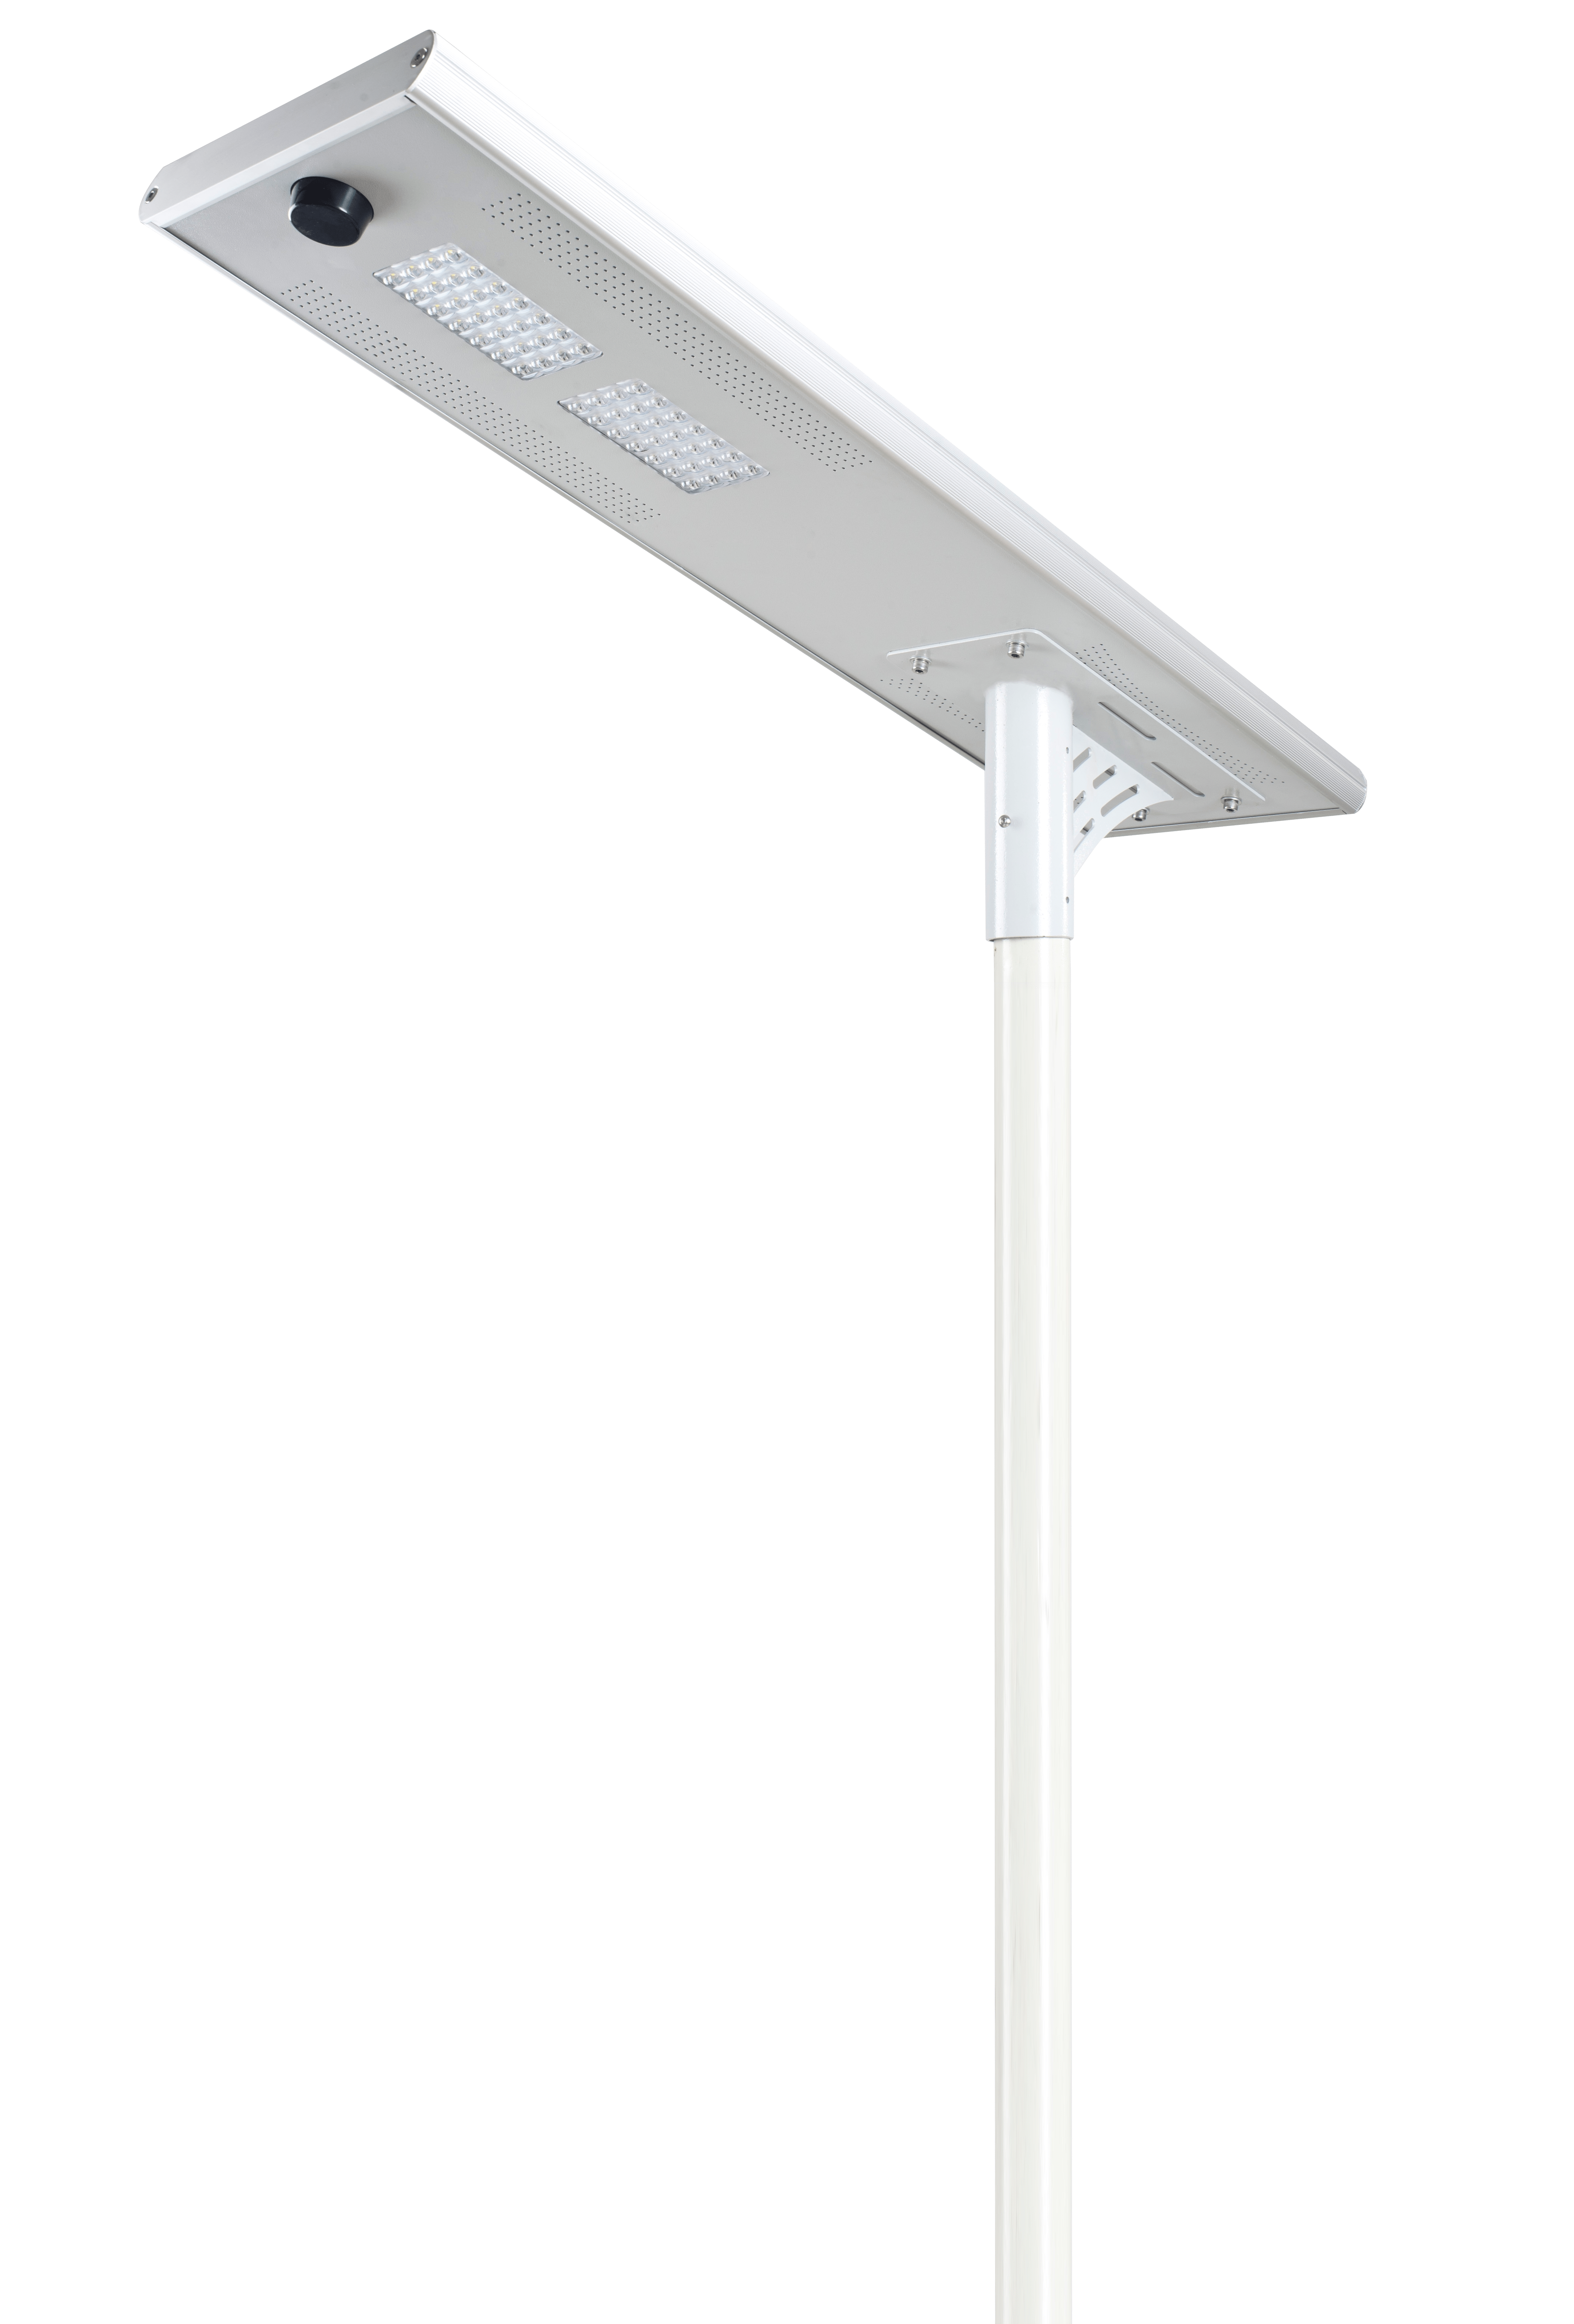 EnkonnSolar Introduces Guide About How to Design Solar Lighting Projects With All in One Solar Street Lights